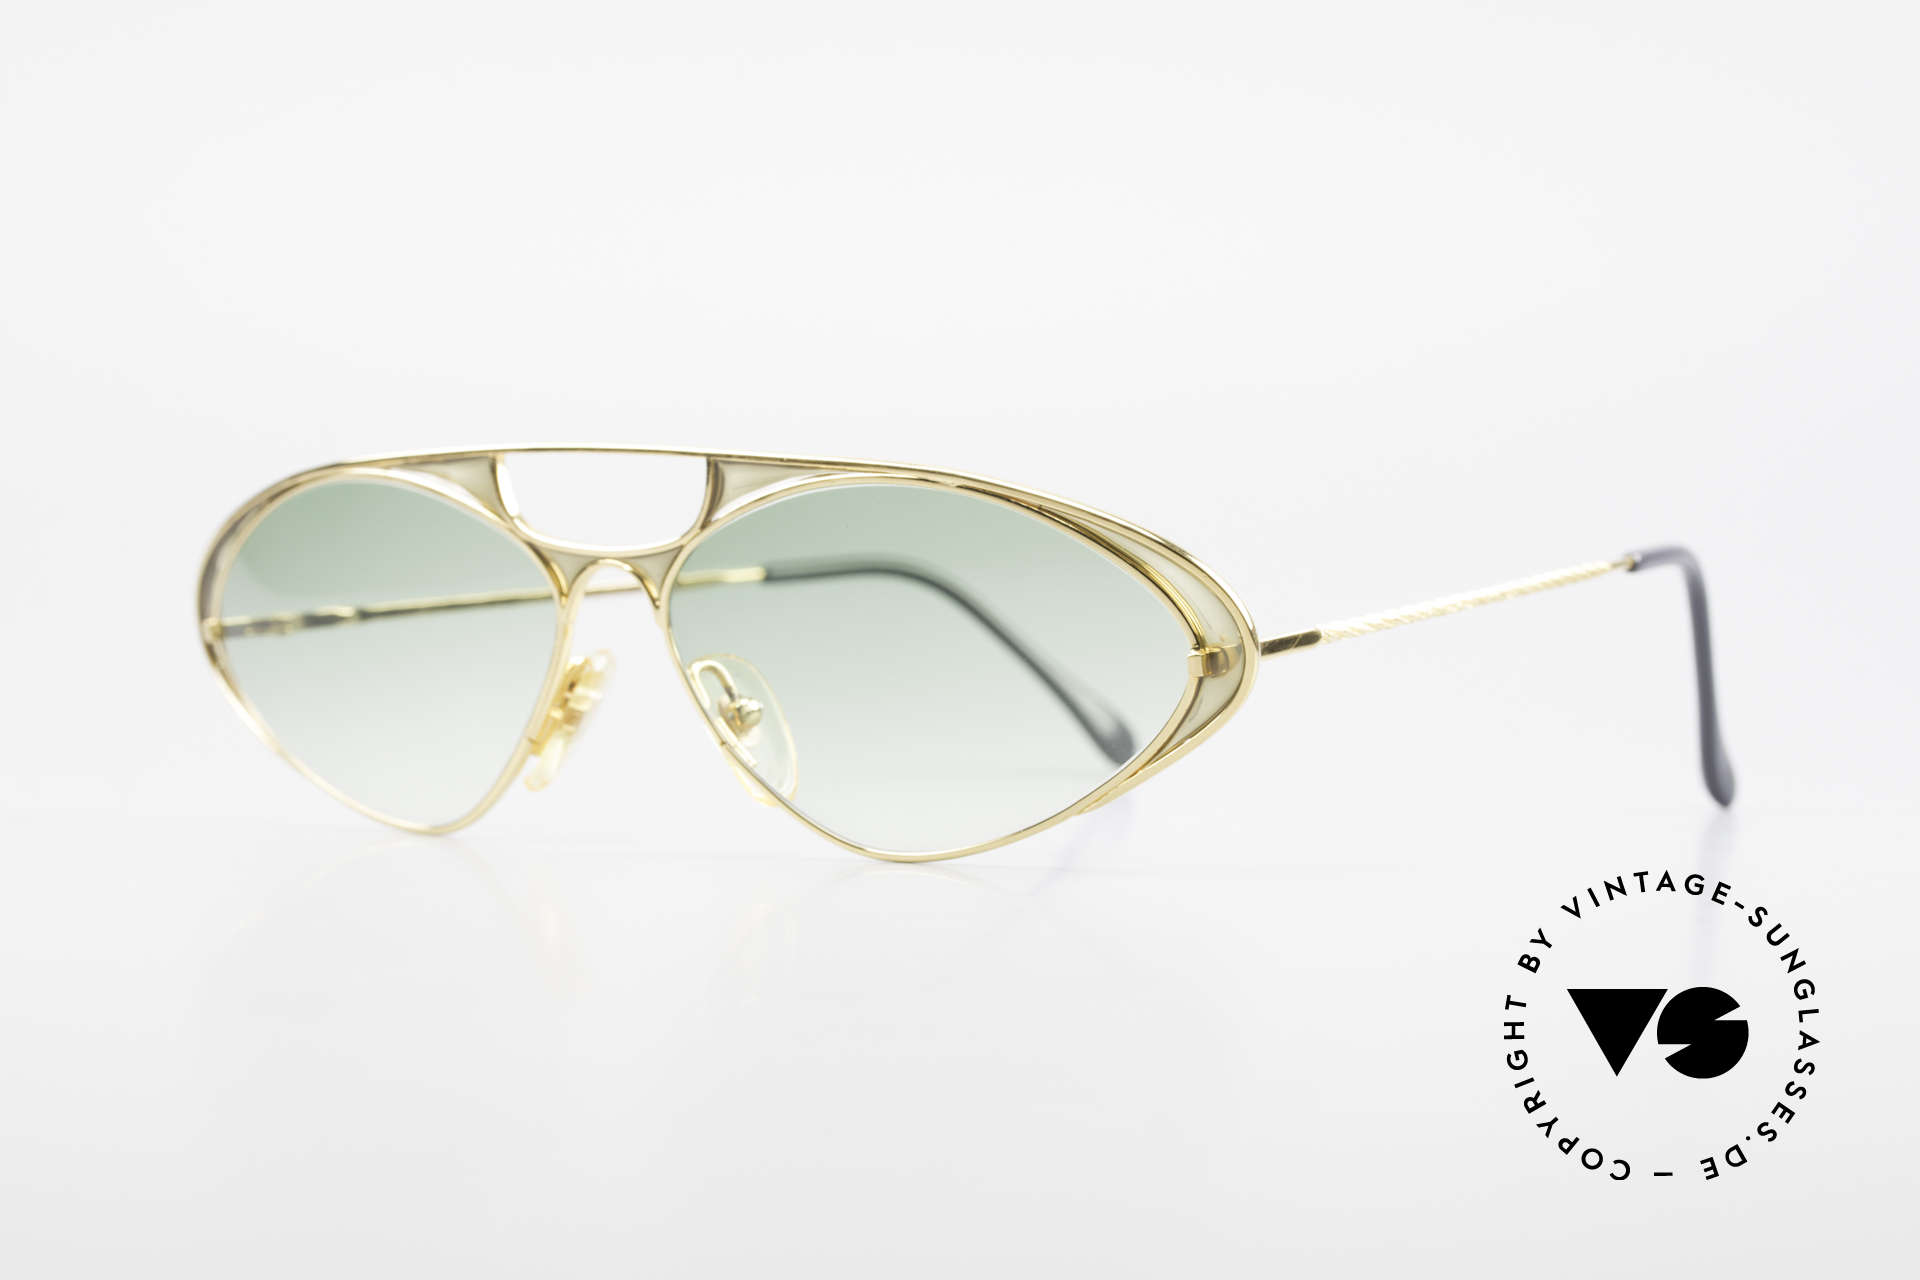 Casanova LC8 Murano Glass Luxury Shades, GOLD-PLATED frame with famous glass from MURANO, Made for Women